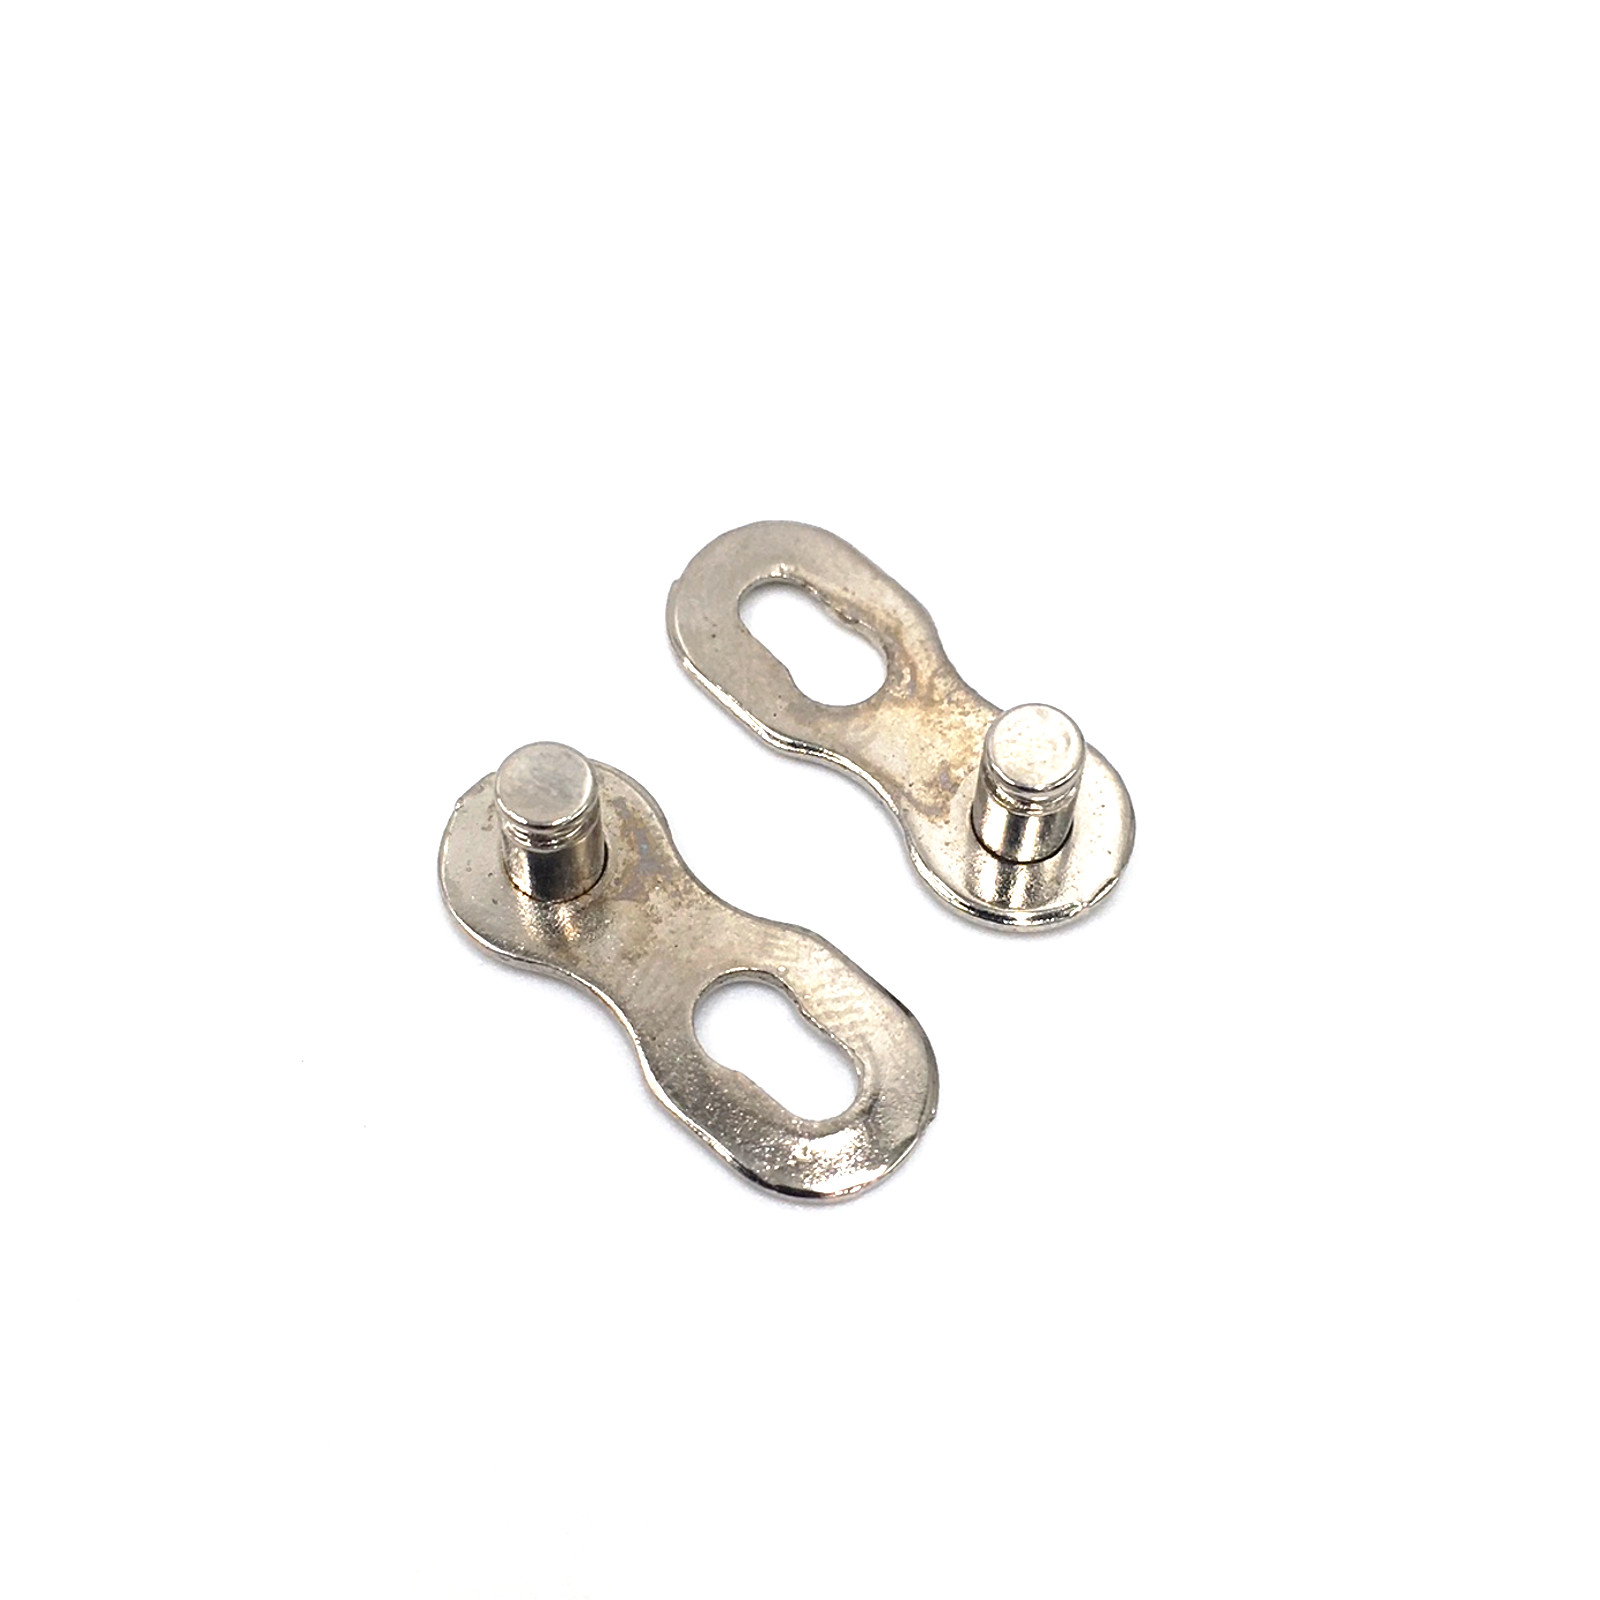 5-X-9-Speed-Chain-Links-Fit-Sram-Shimano-Bike-Cycle-Chains-Quick-Split-Rescue thumbnail 2